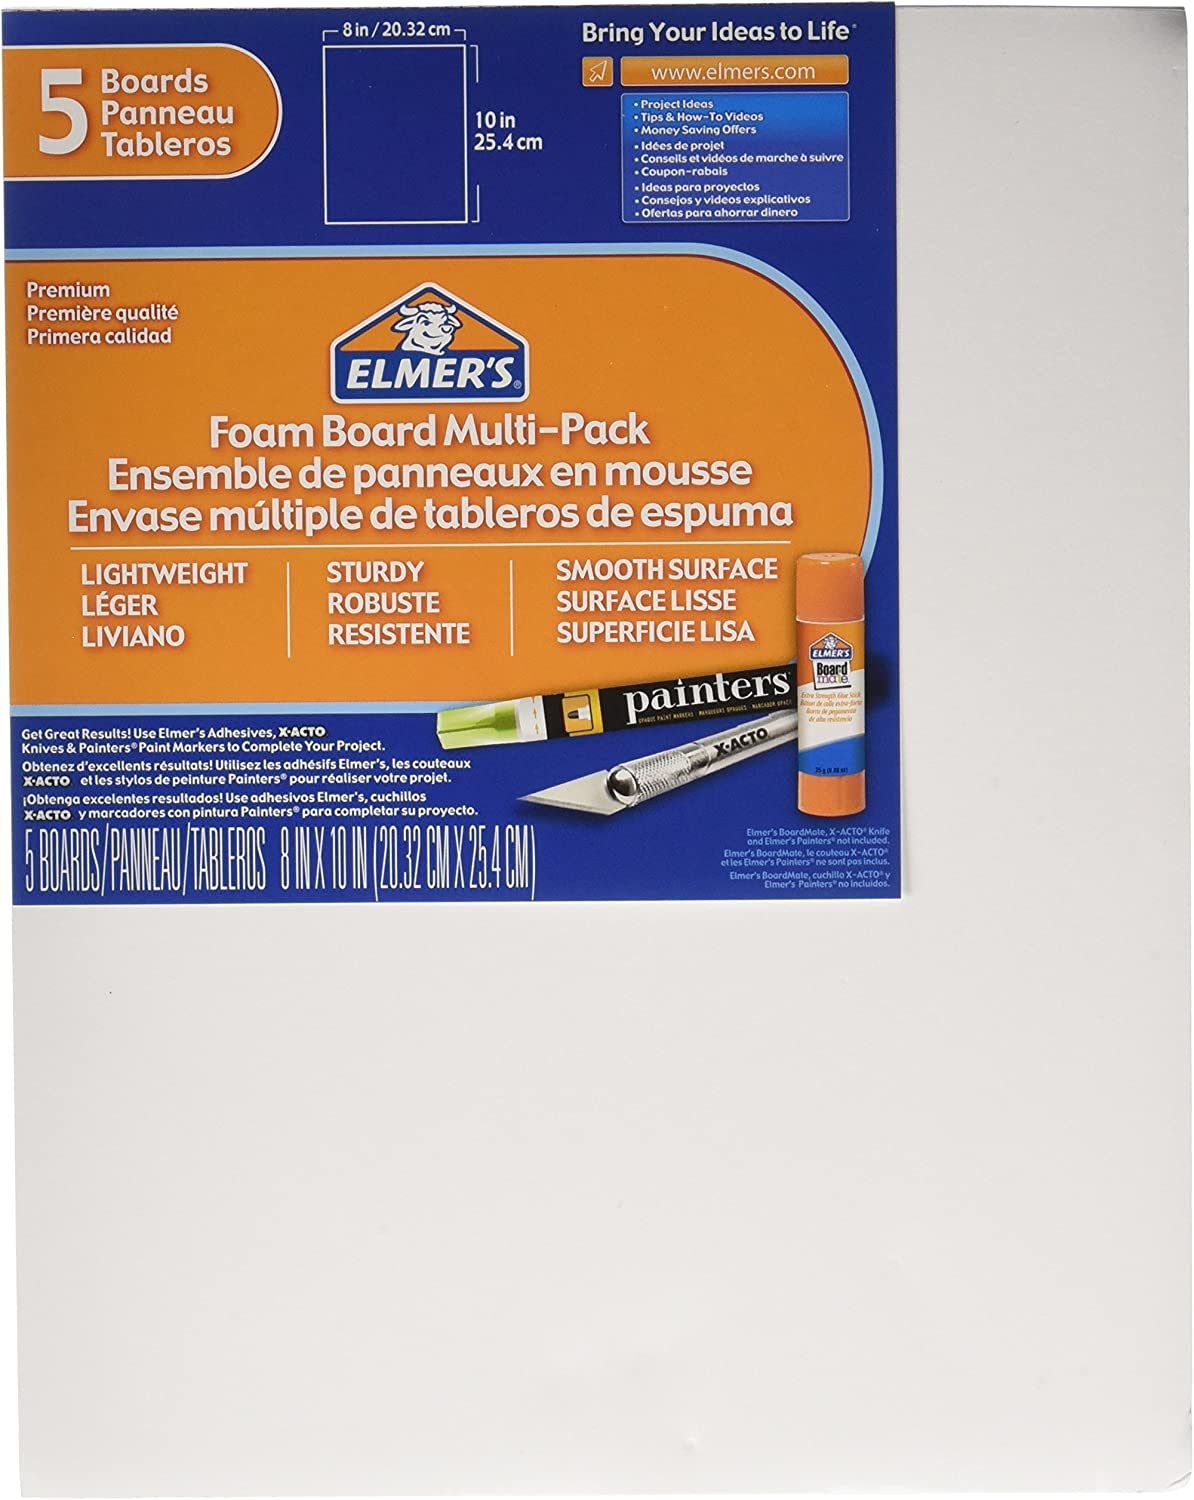 Elmer's Foam Board Multi-Pack, 8 x 10 Inches, 3/16 Inch Thickness, White, 5 Count : Foam Boards : Office Products